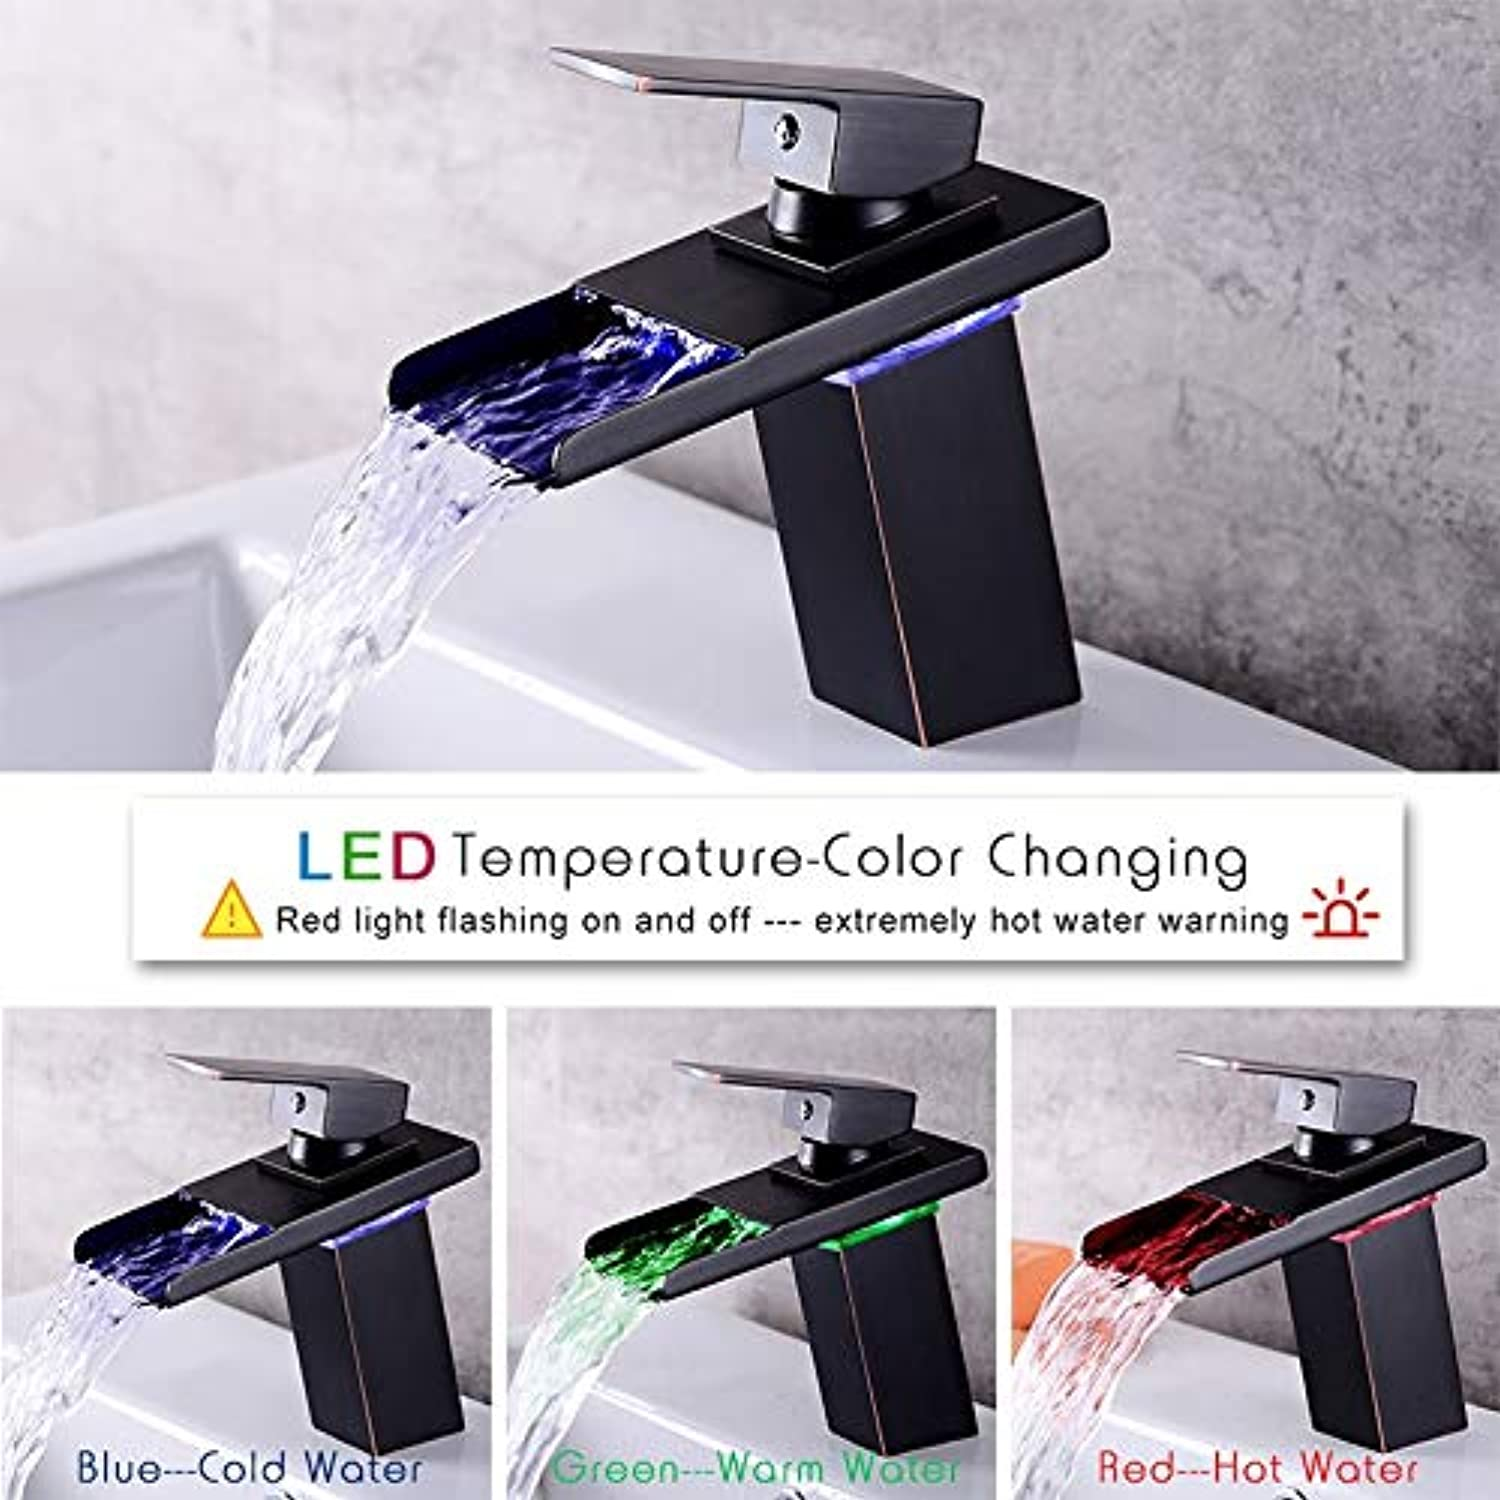 Led Sensor color Changing Bathroom Faucet Black Chrome Basin Faucet Waterfall Spout Hot and Cold Water Single Handle Faucet